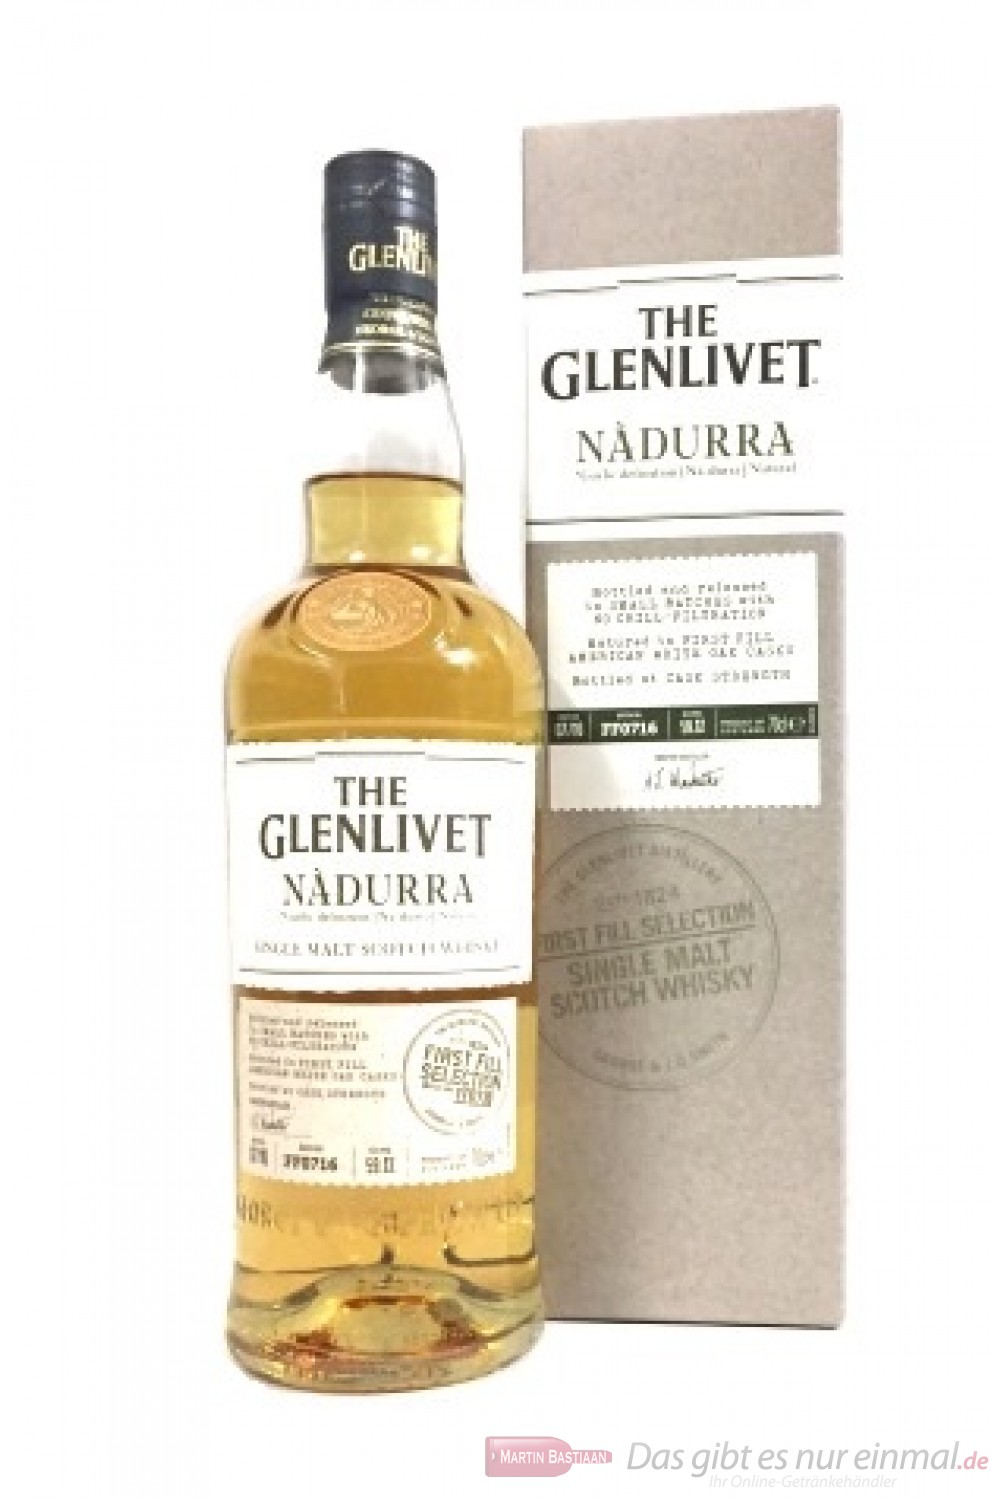 The Glenlivet Nadurra First Fill Selection 60,4%